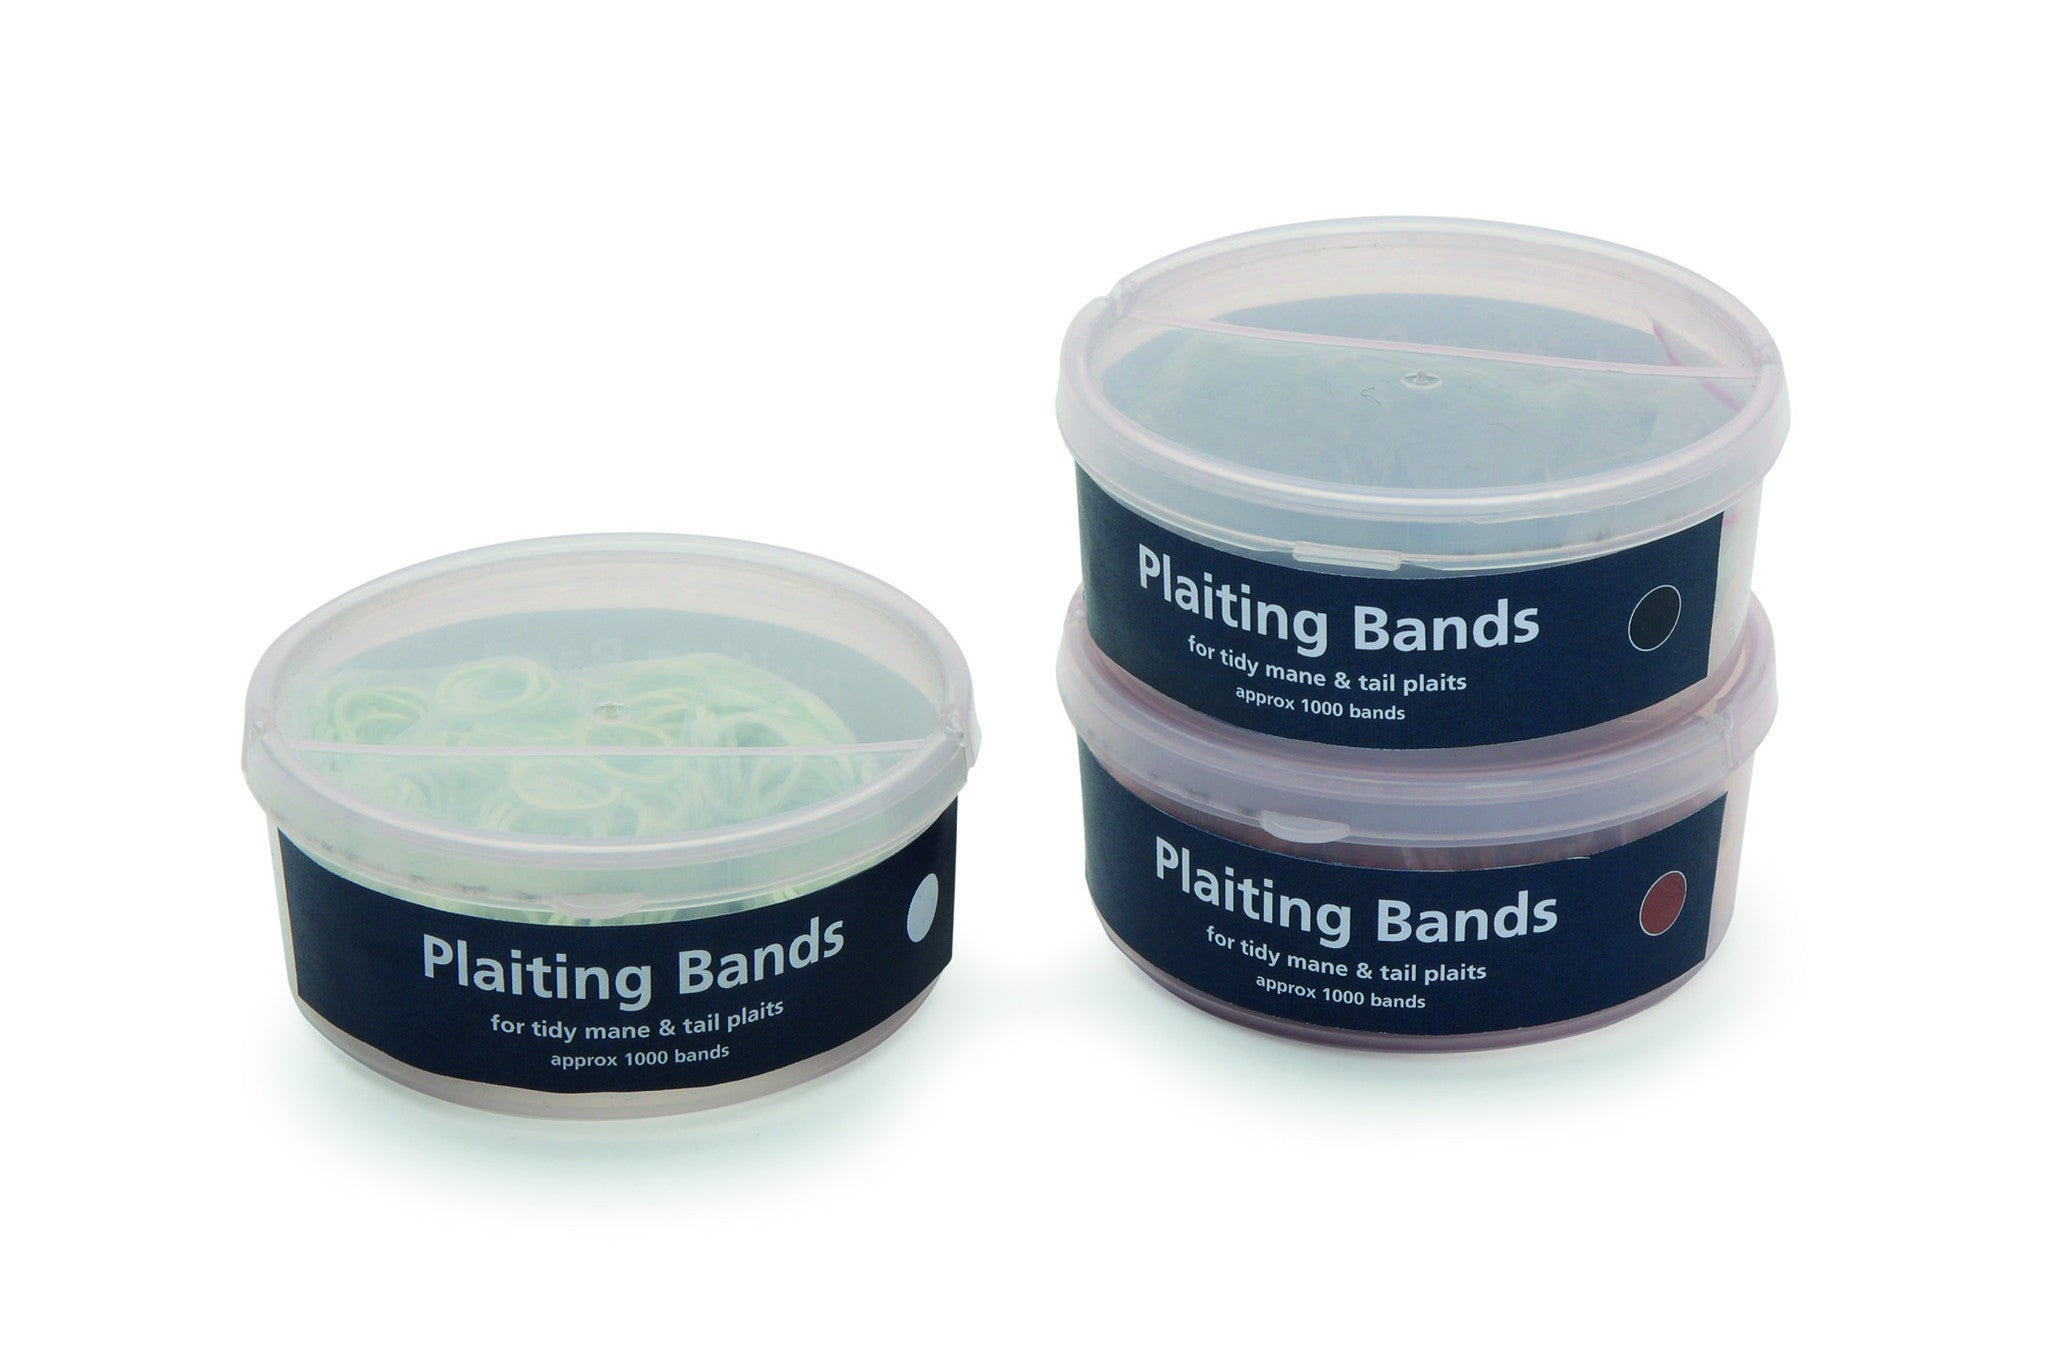 Plaiting Bands - Tub